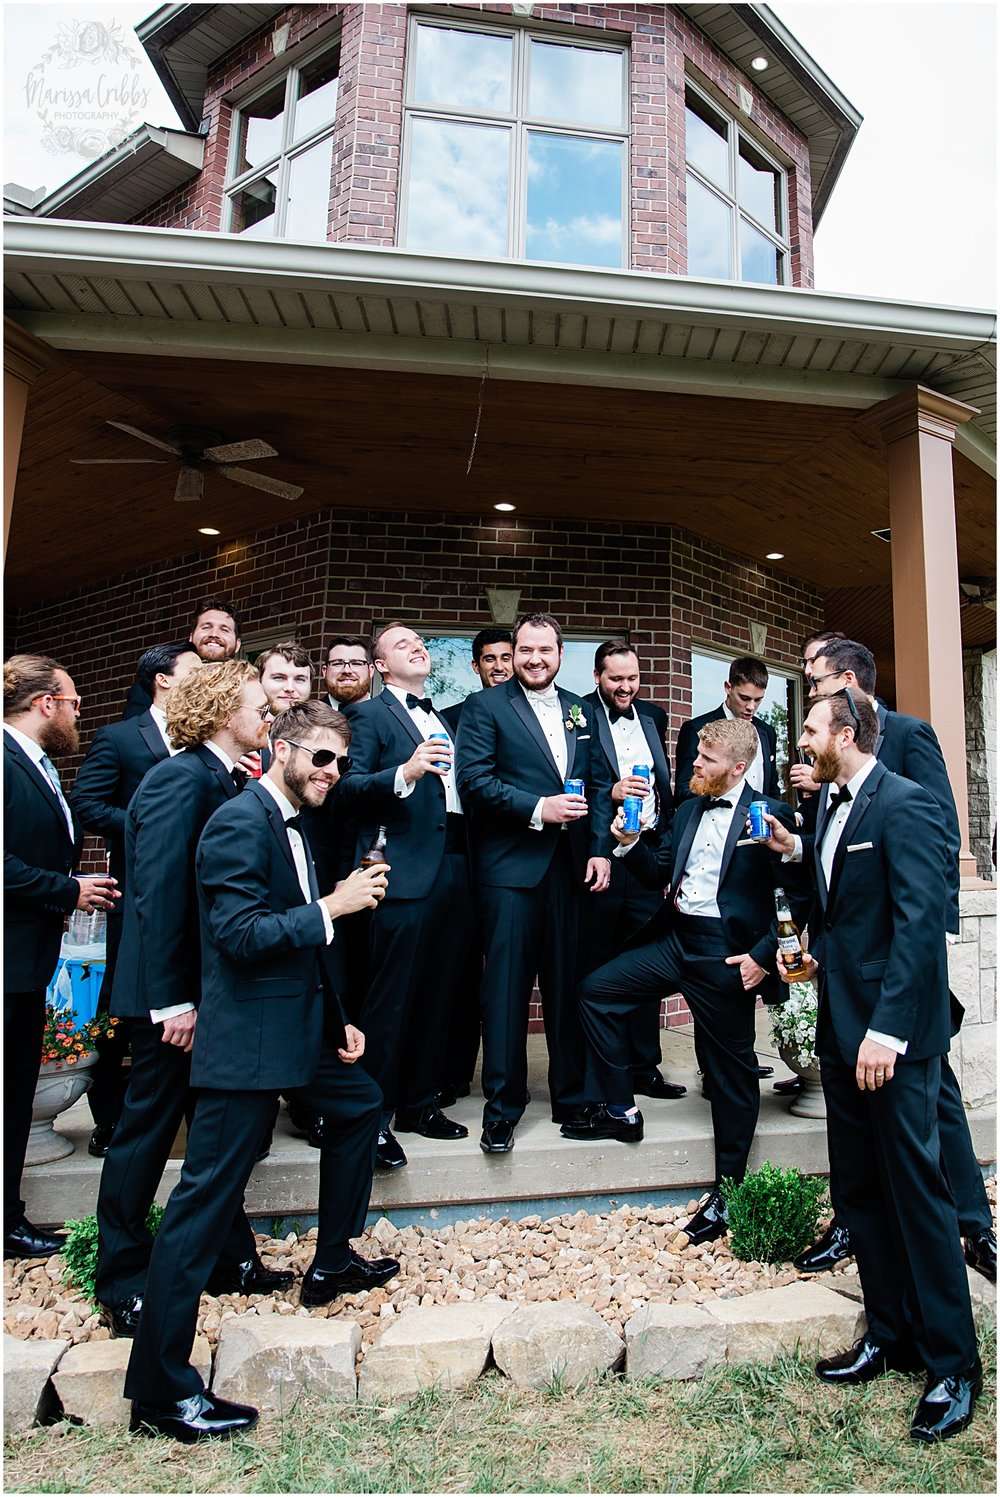 GORBY WEDDING | MARISSA CRIBBS PHOTOGRAPHY_5035.jpg